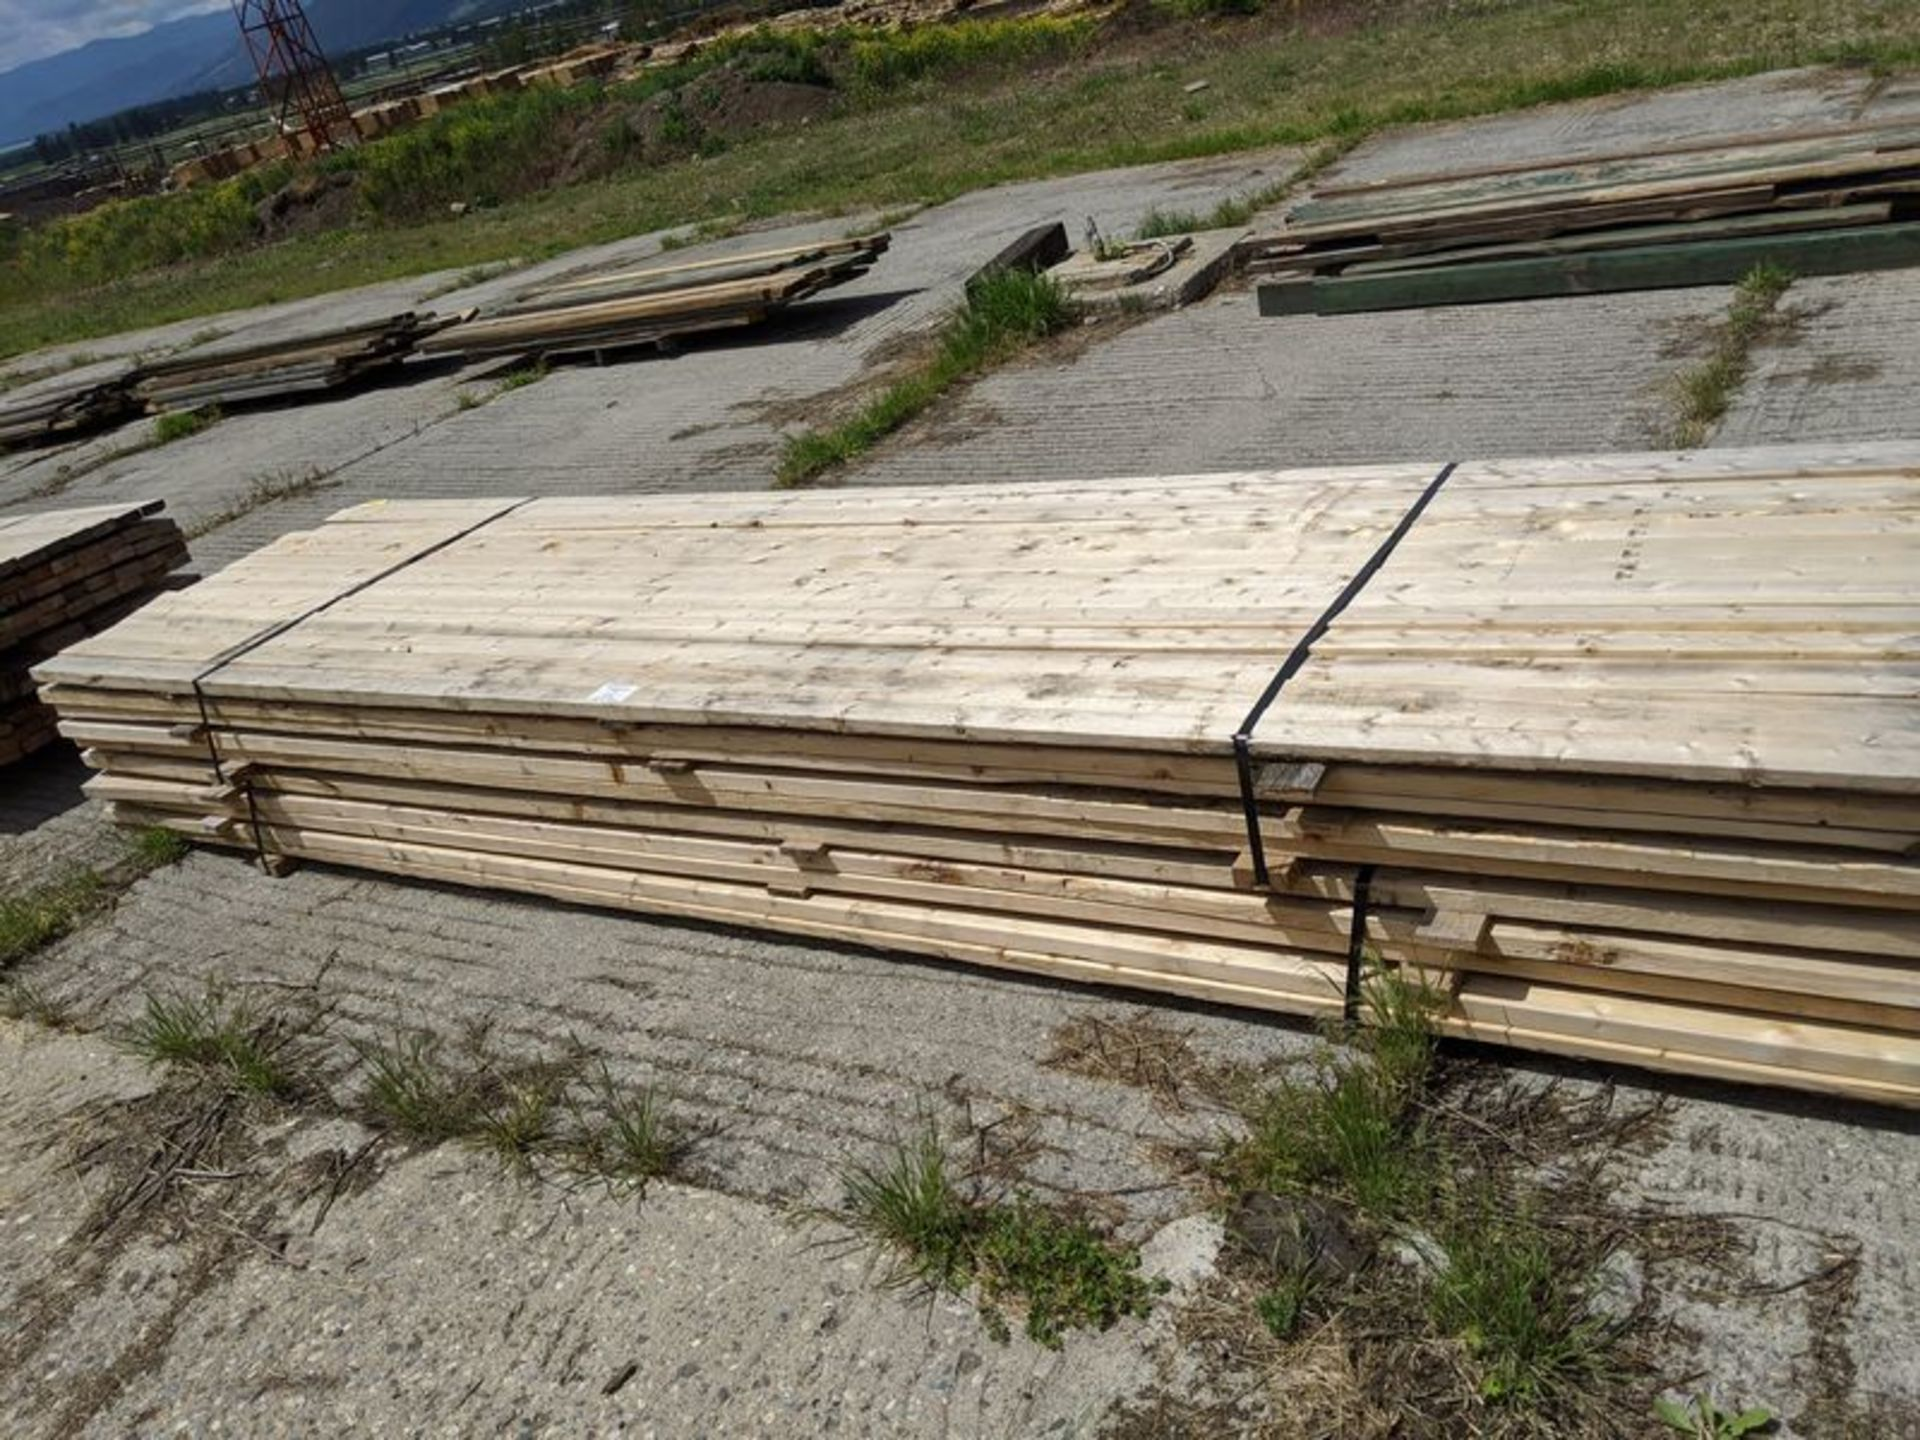 Lot 22 - 2 Slings 2 x 4, Approx. 14 ft